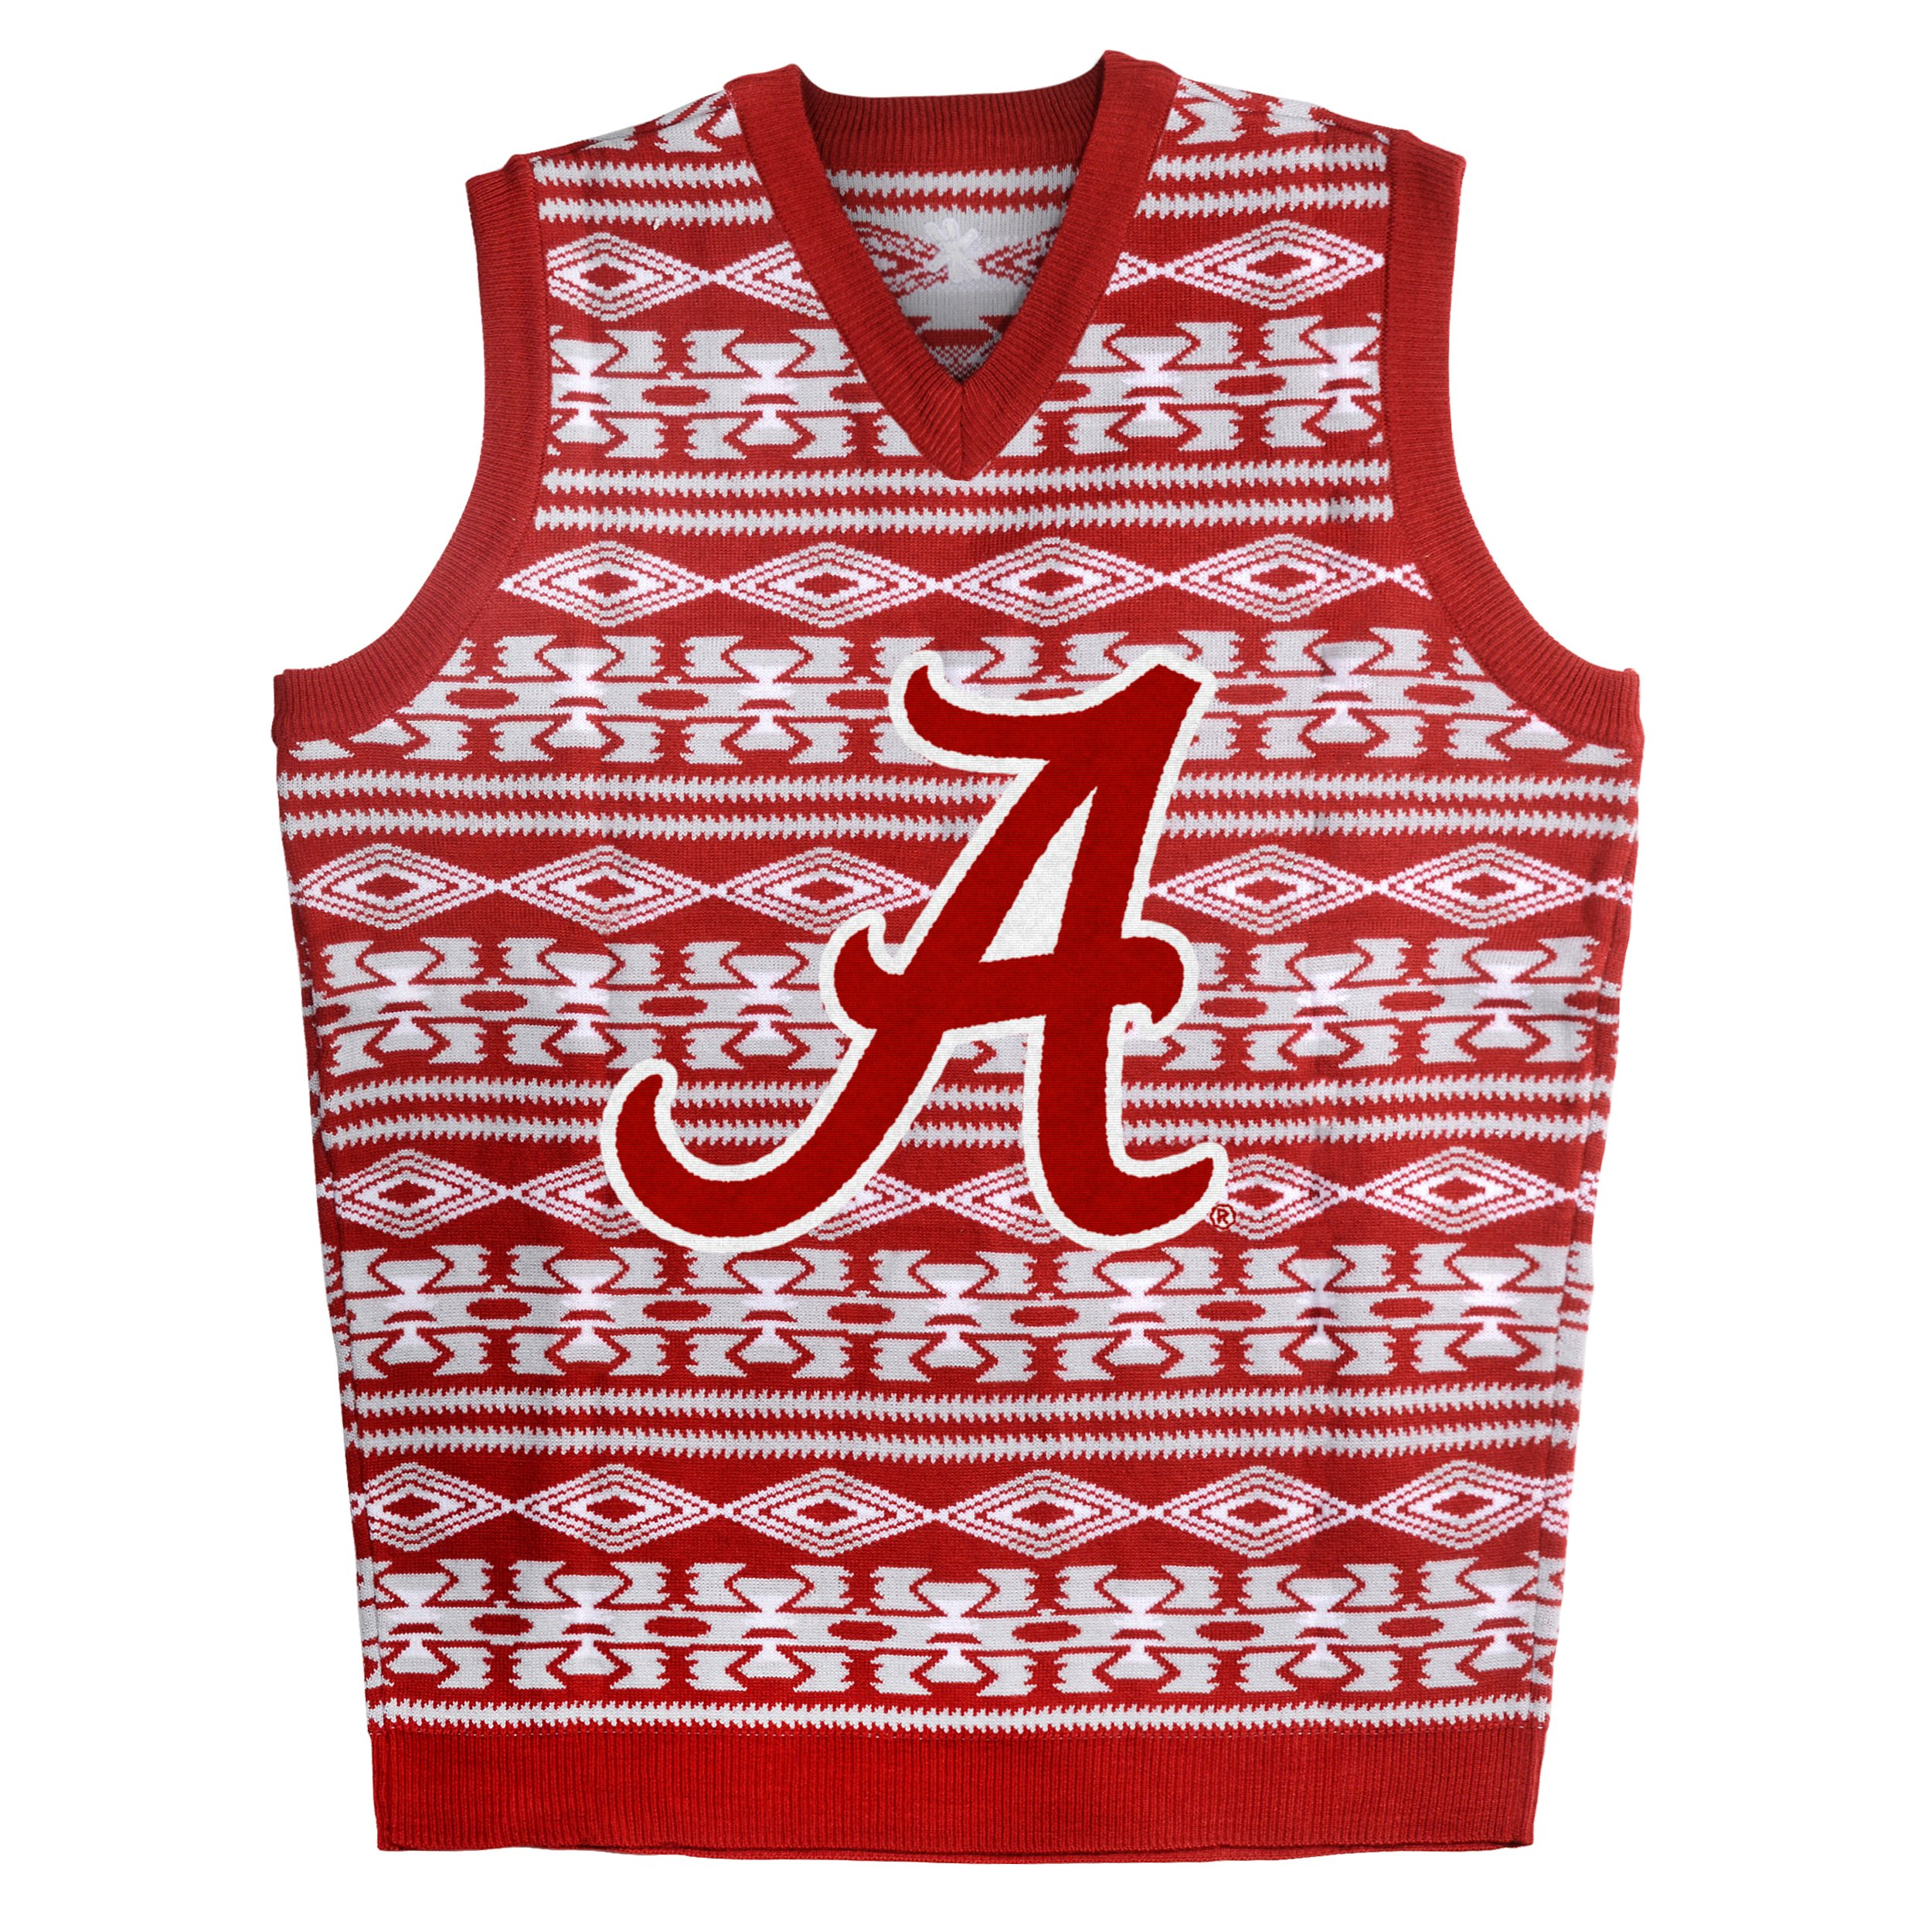 Forever Collectibles KLEW NCAA Alabama Crimson Tide Ugly Sweater Vest, Small, Red